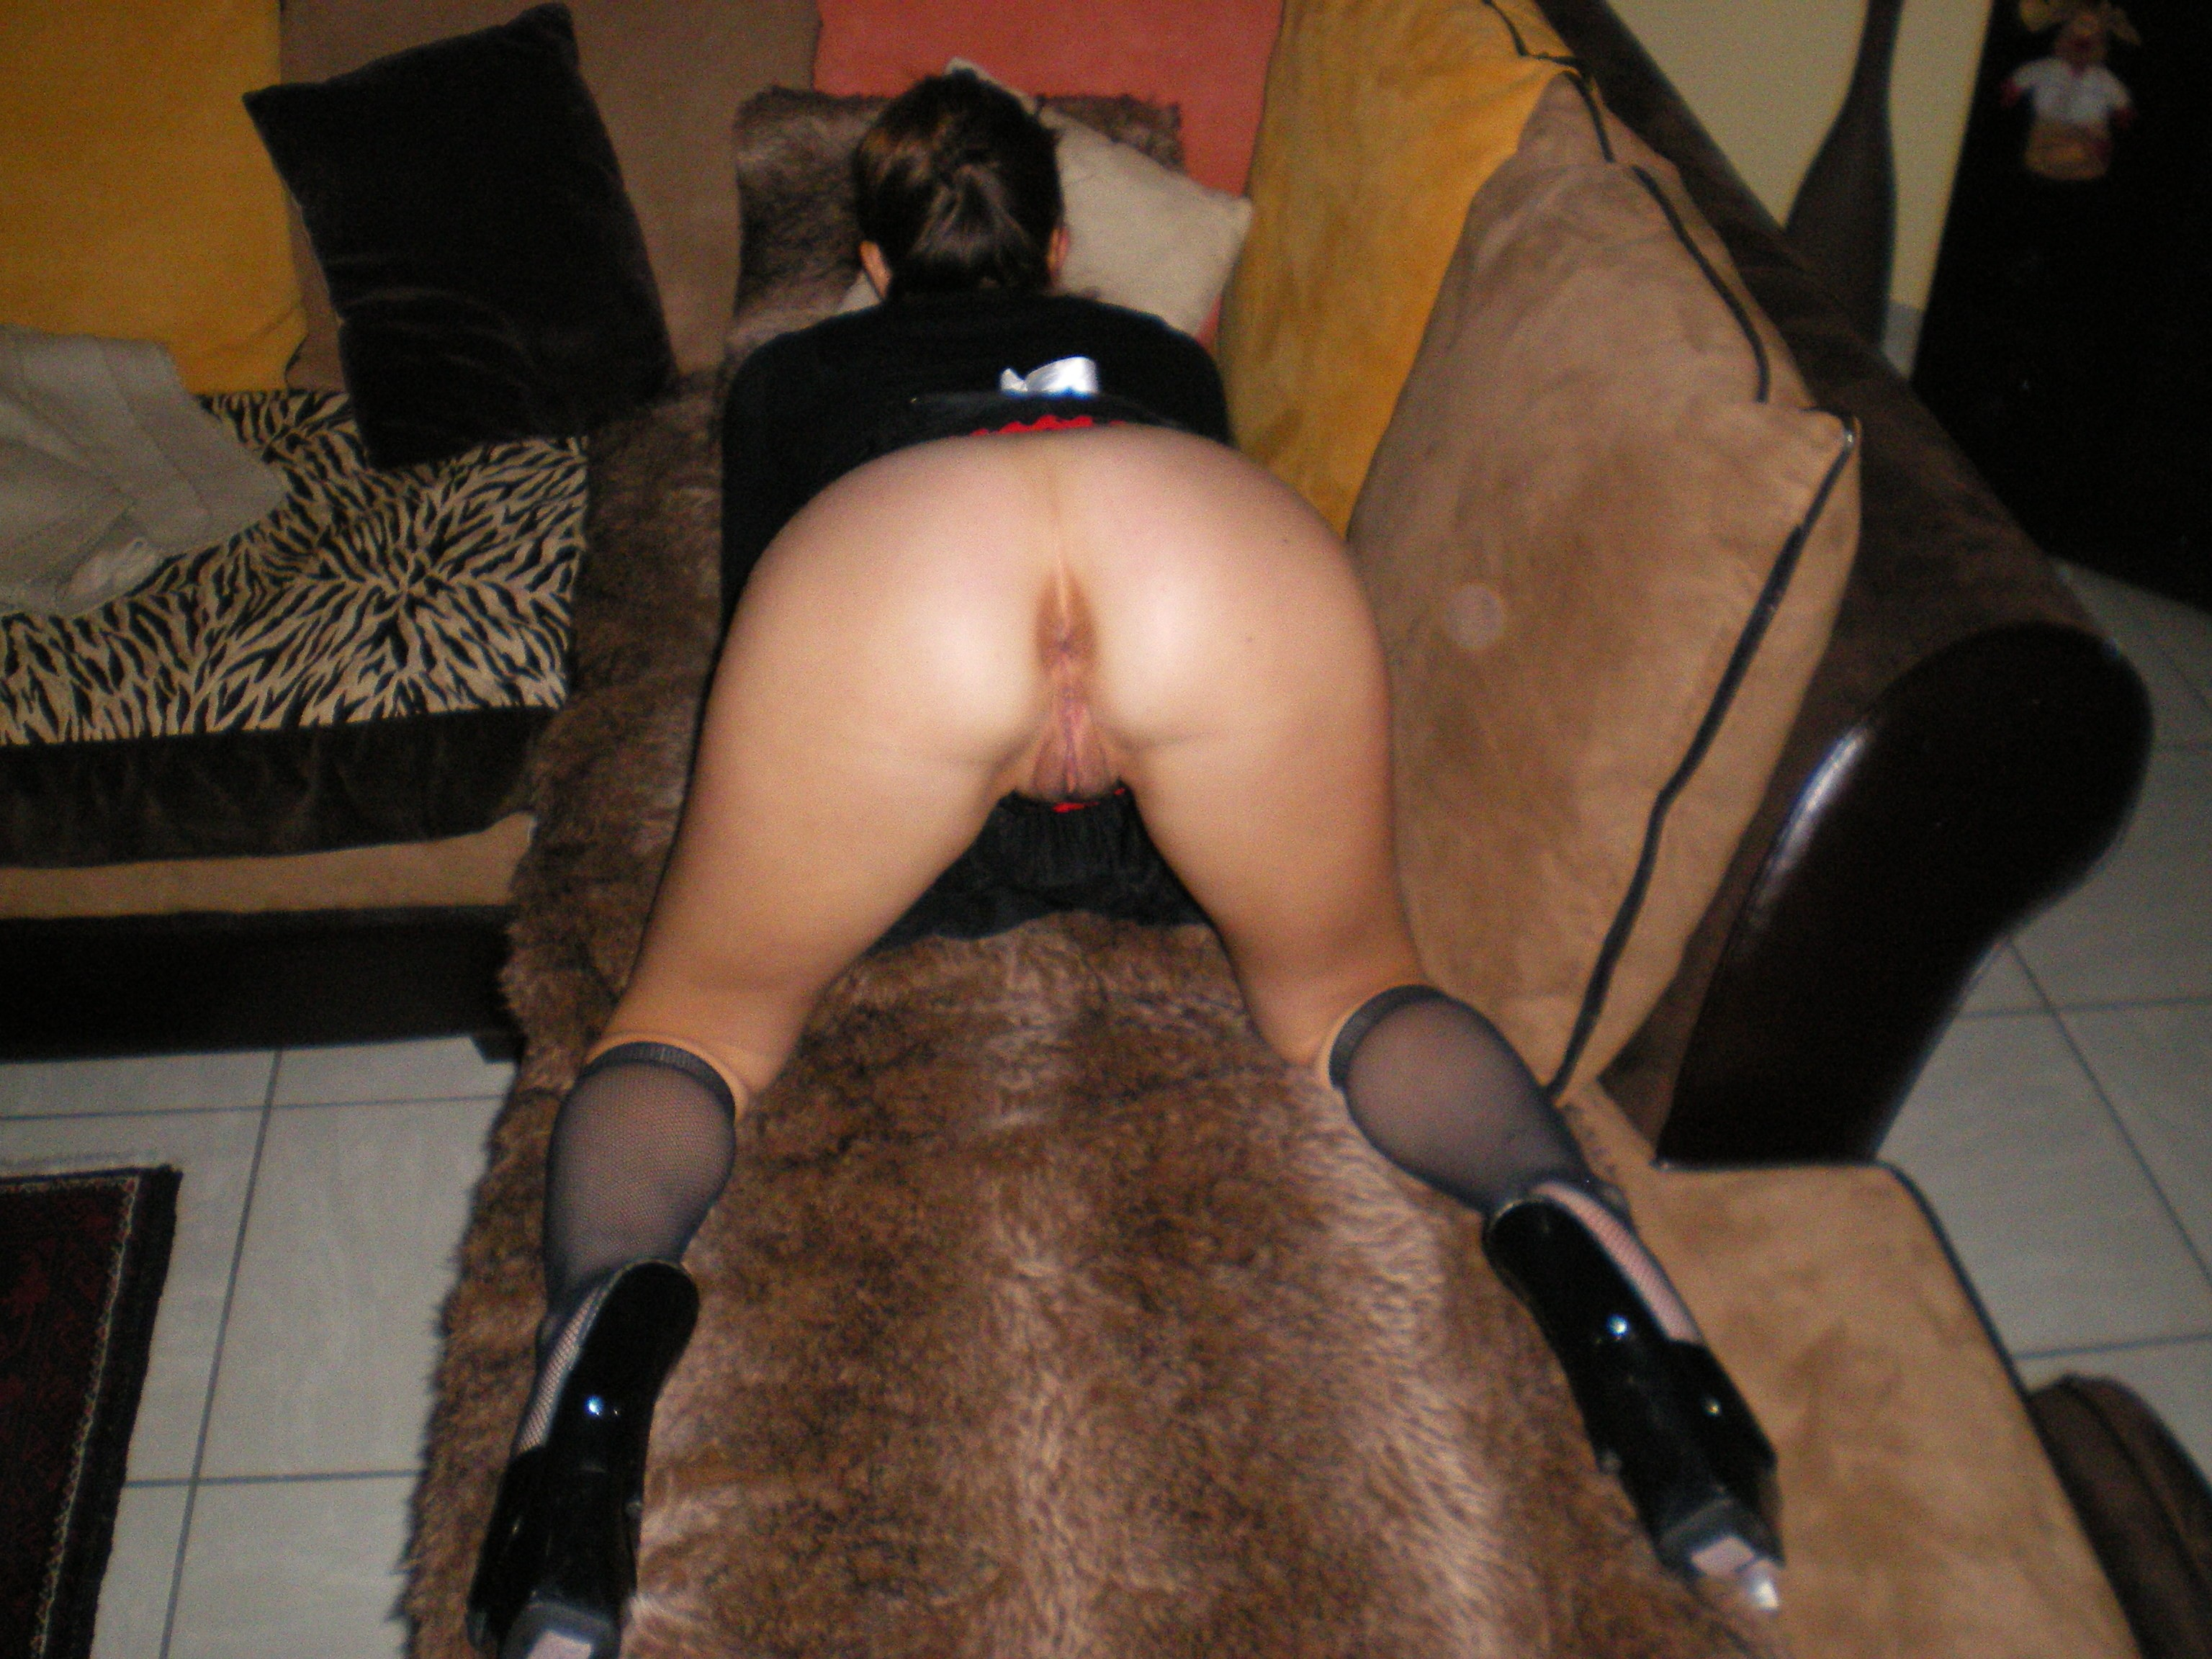 ... Milf Amateur Juicy Porn Photos Ass Milf Photo Asses Butt Style Doggy: www.older-mature.net/ass-pic-milf/267128.html